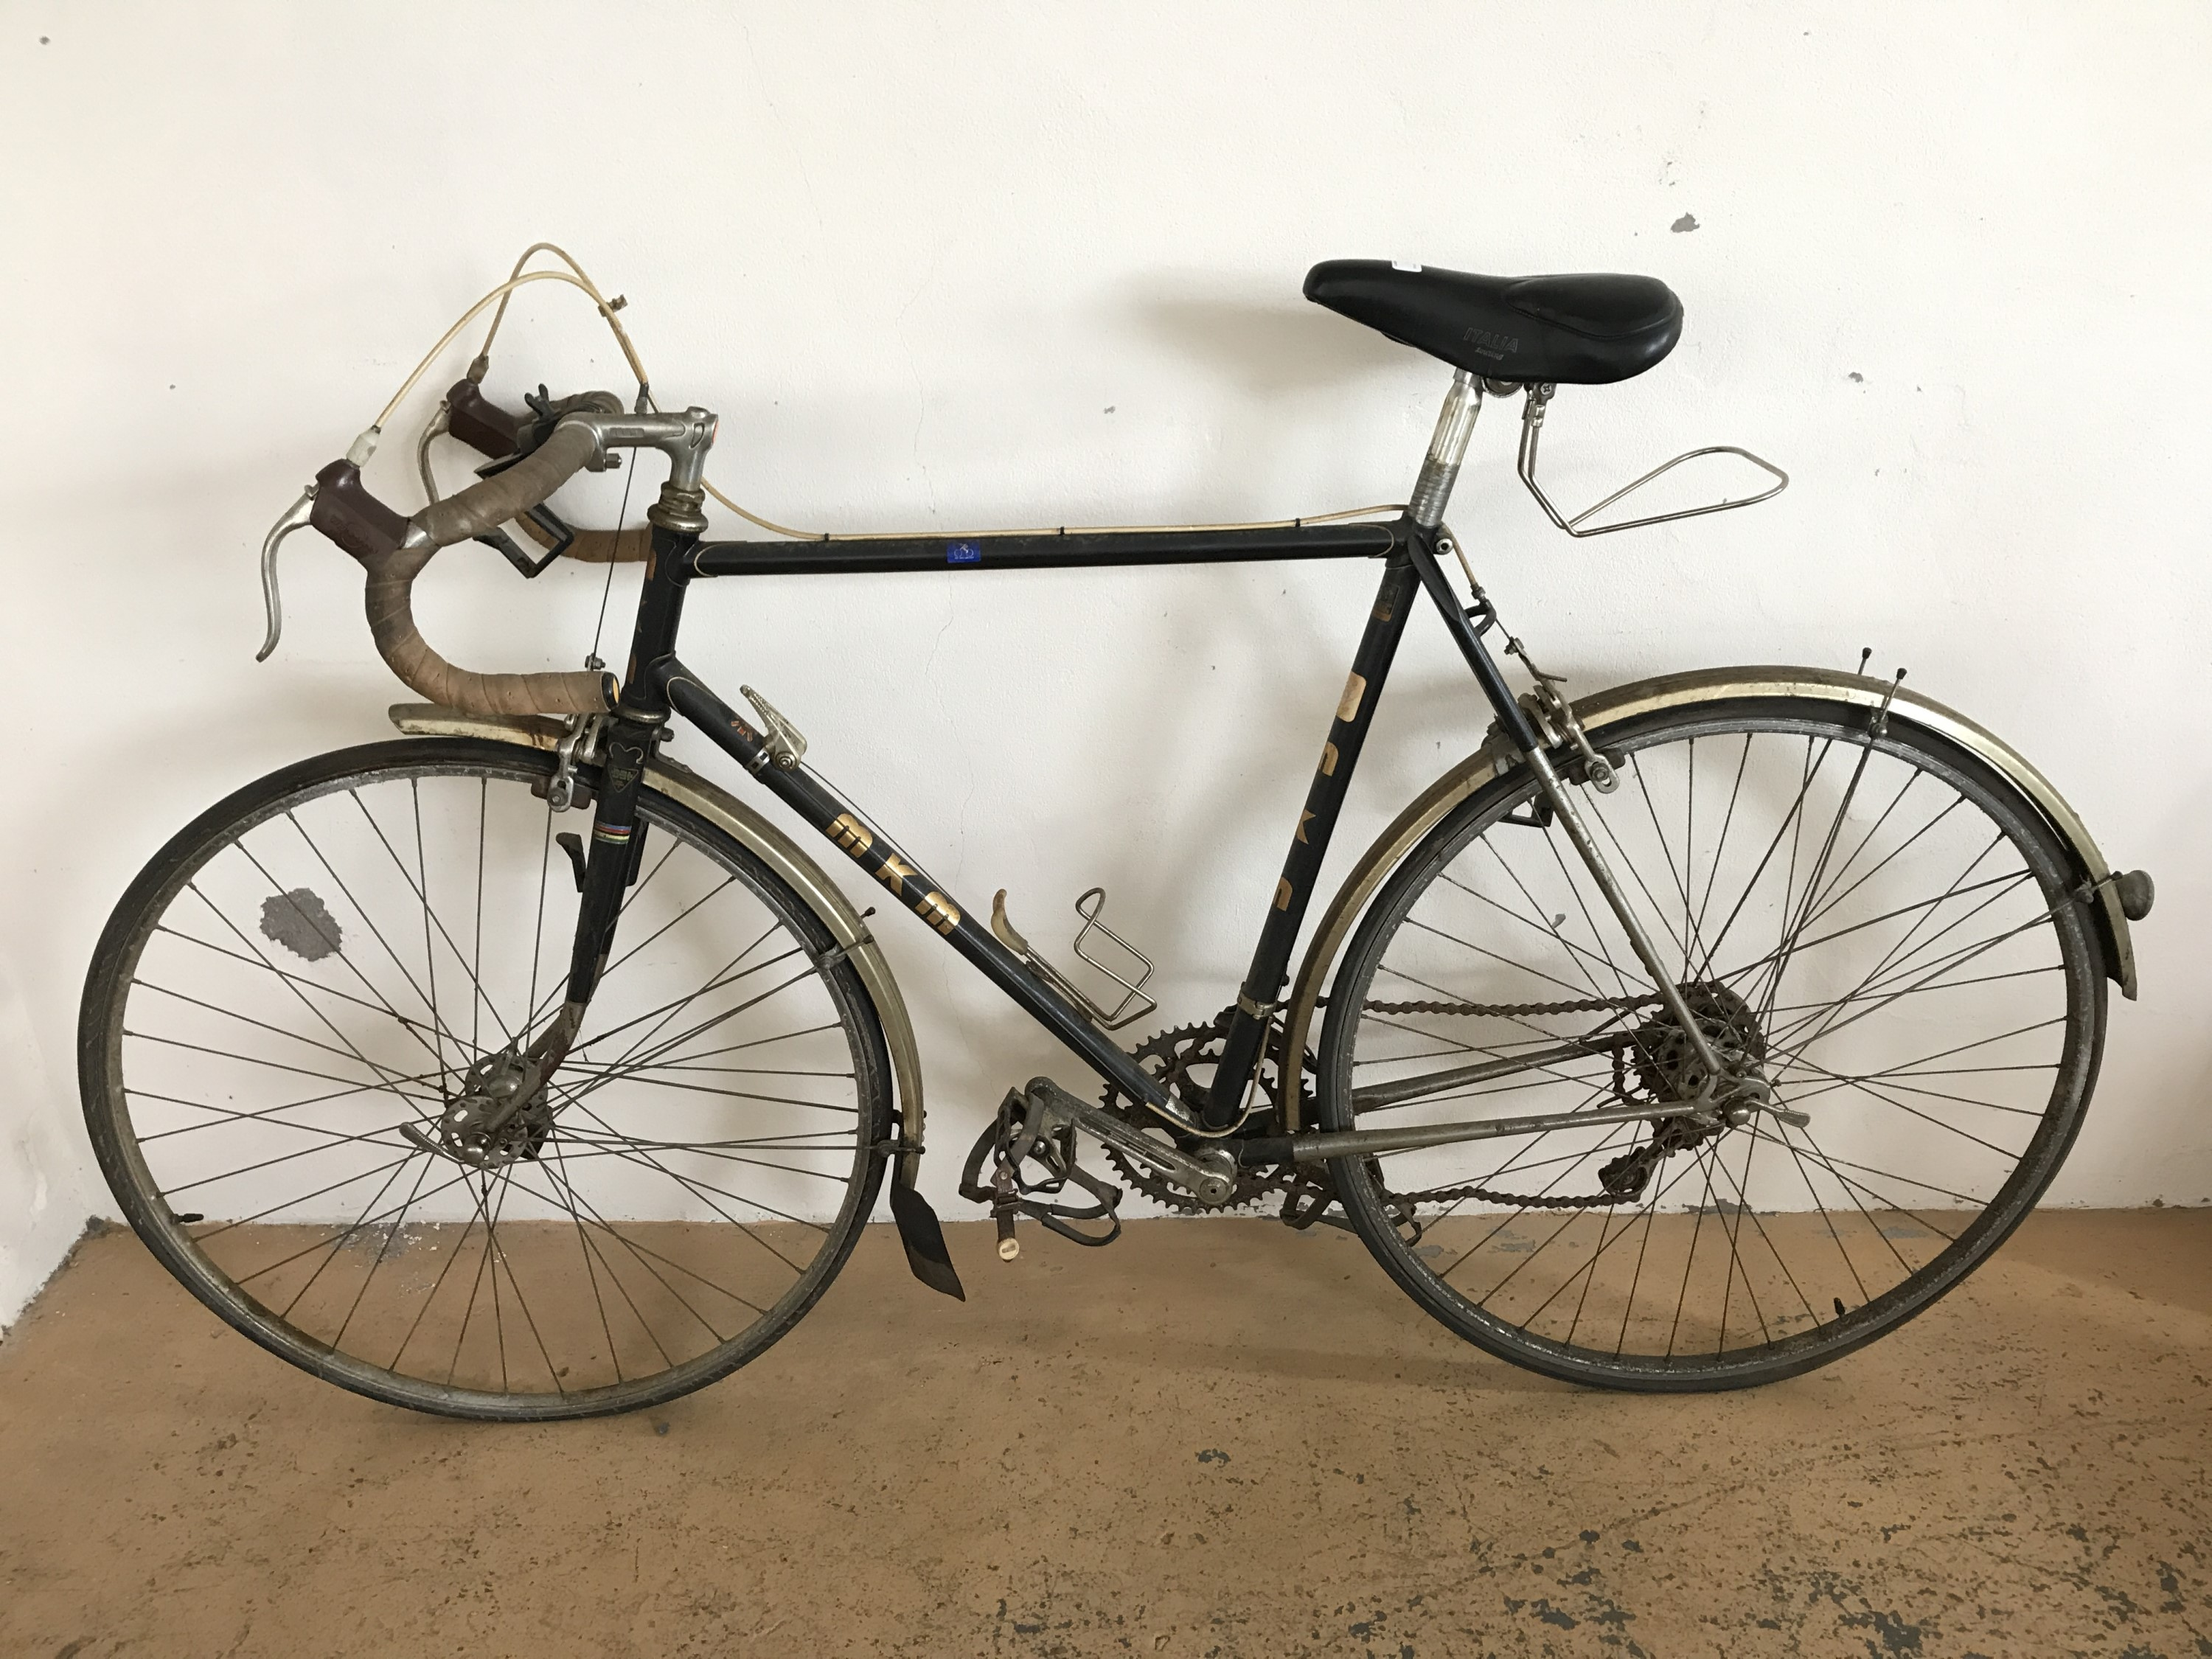 Lot 60 - An MKM Kodex racer bicycle, circa 1970s-1980s